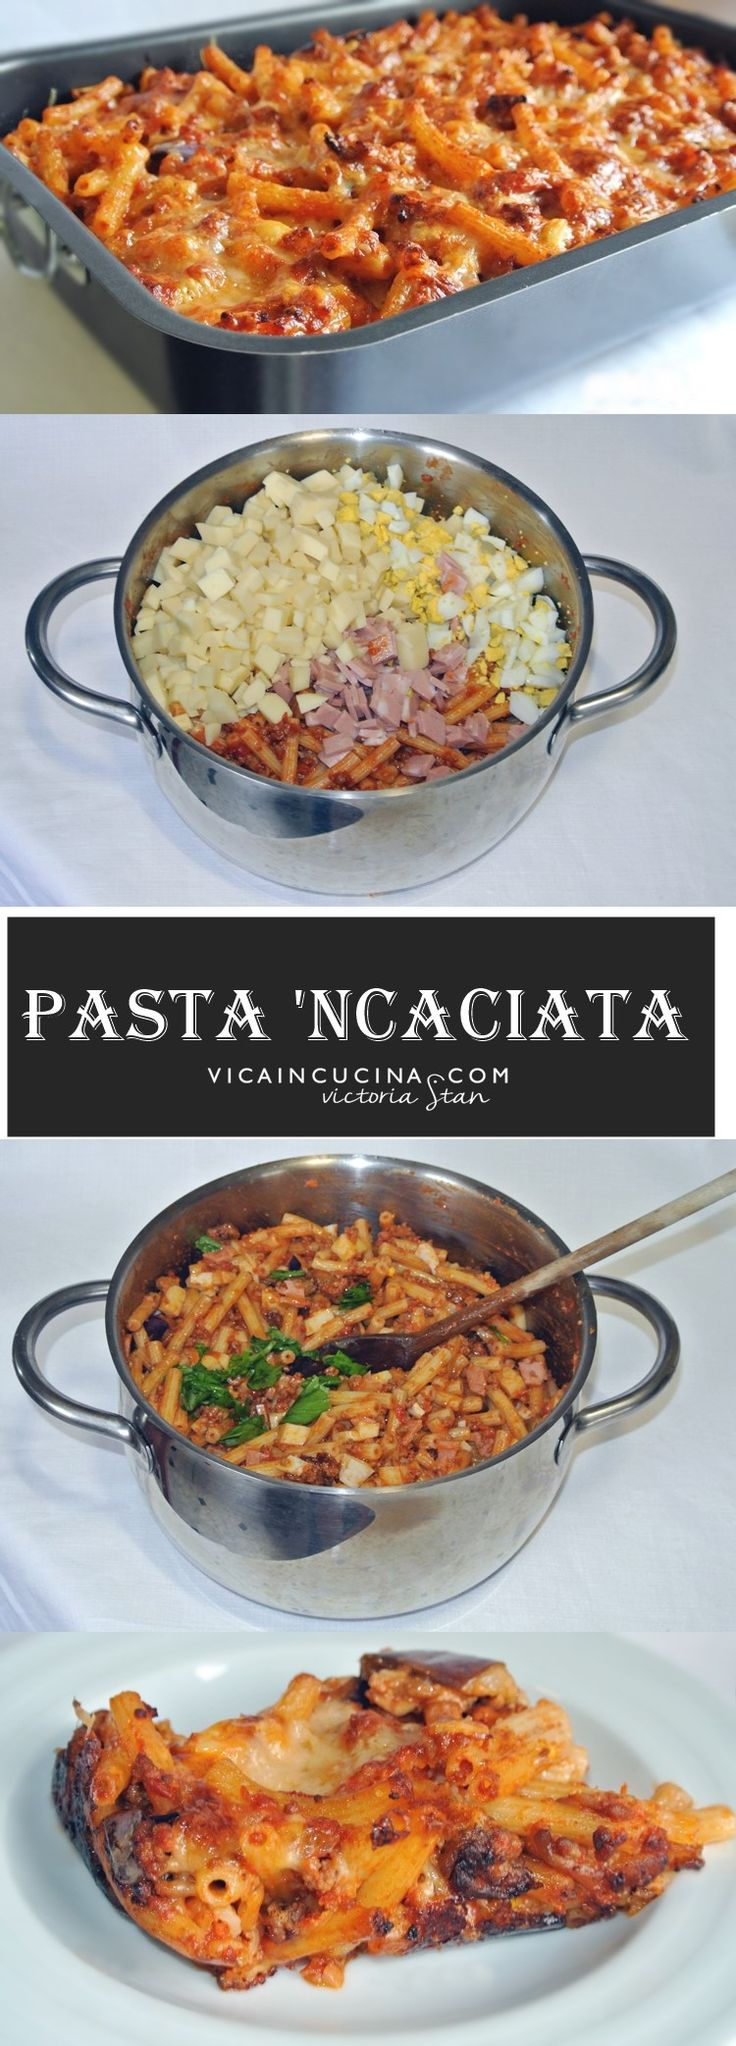 Pasta 'ncaciata is an authentic sicilian dish. Recipe with step by step pictures by @vicaincucina.